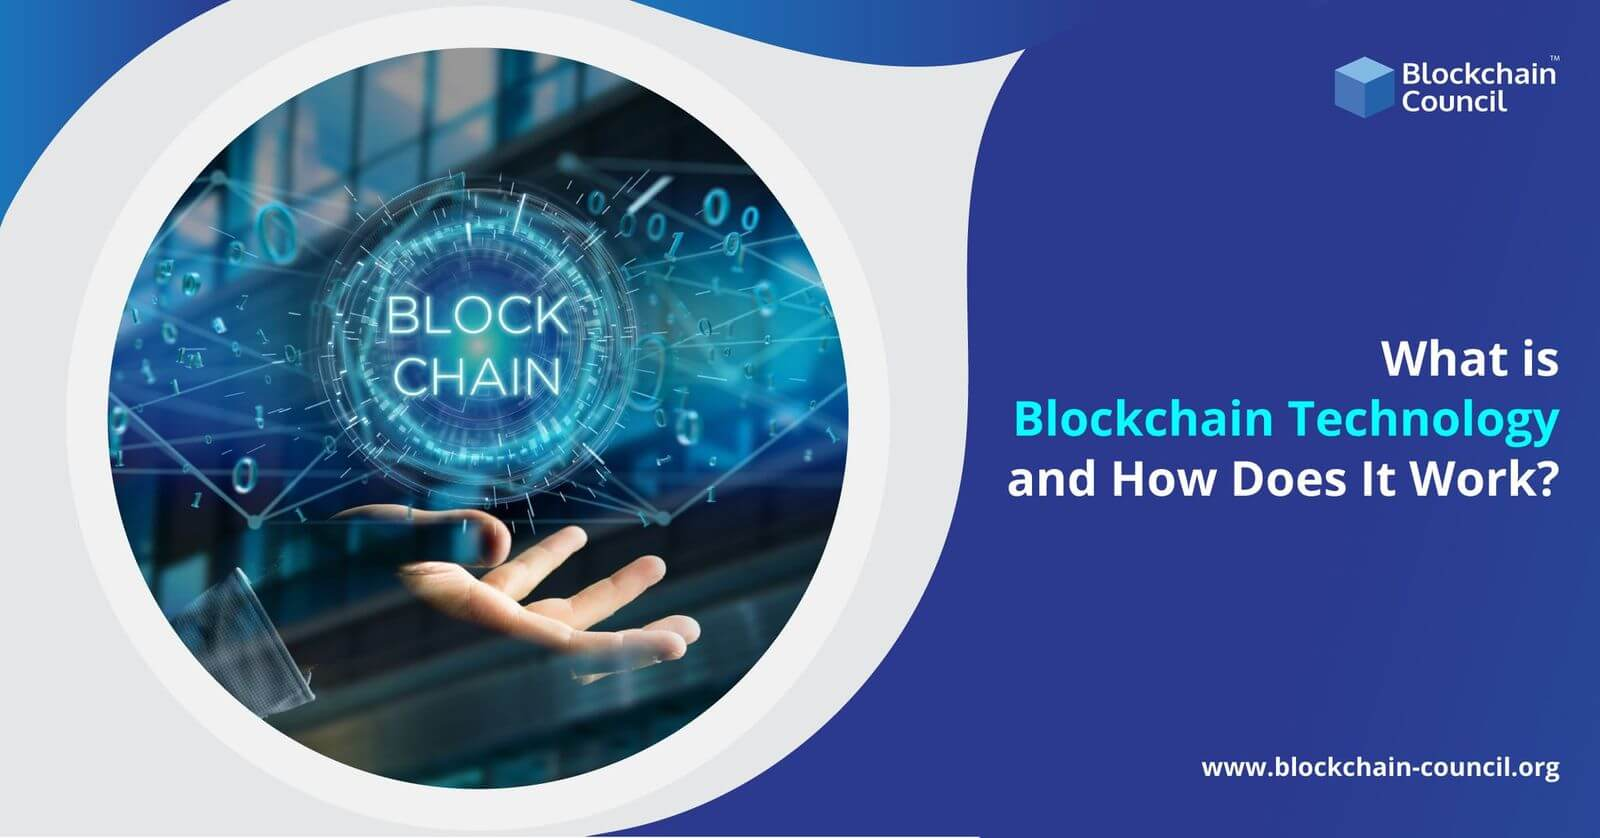 What is Blockchain Technology, and How Does It Work?